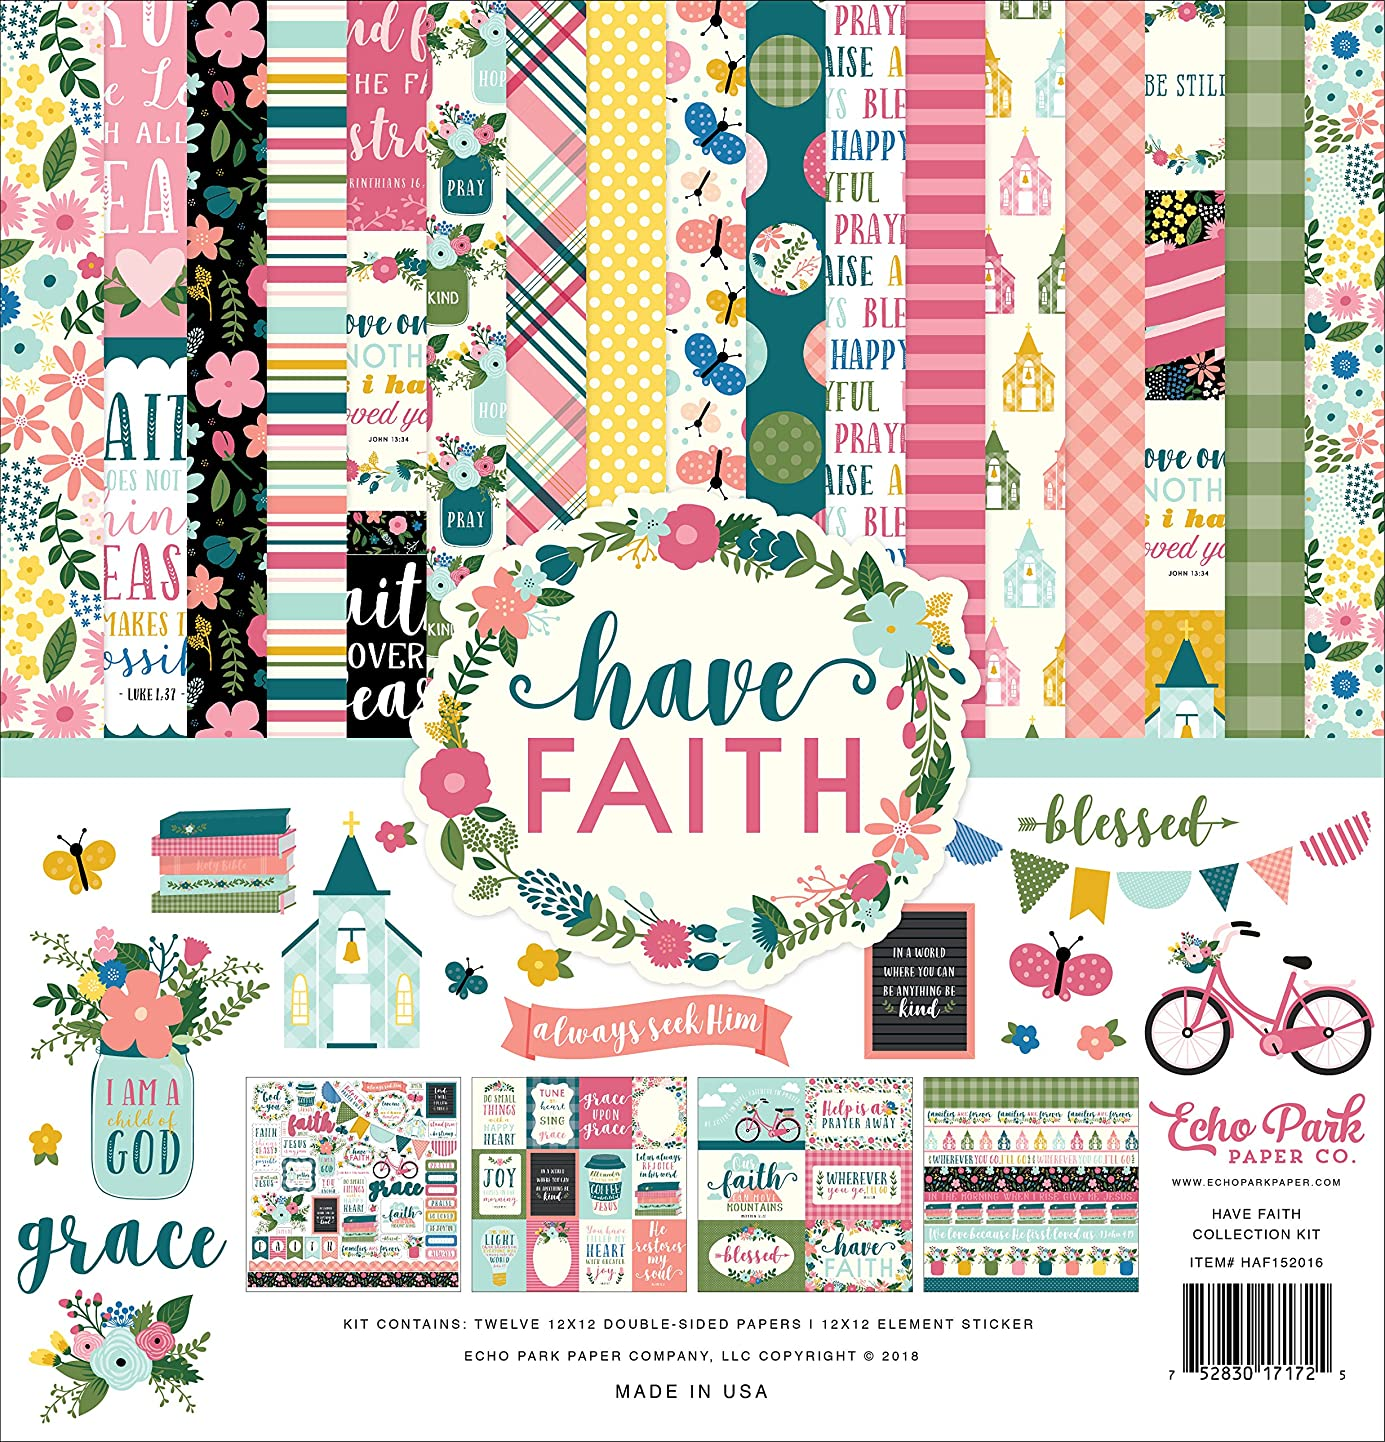 Echo Park Paper Company HAF152016 Have Have Faith Collection Kit, Purple, Pink, Mint Green, Teal, Coral ggsfvhblwik9